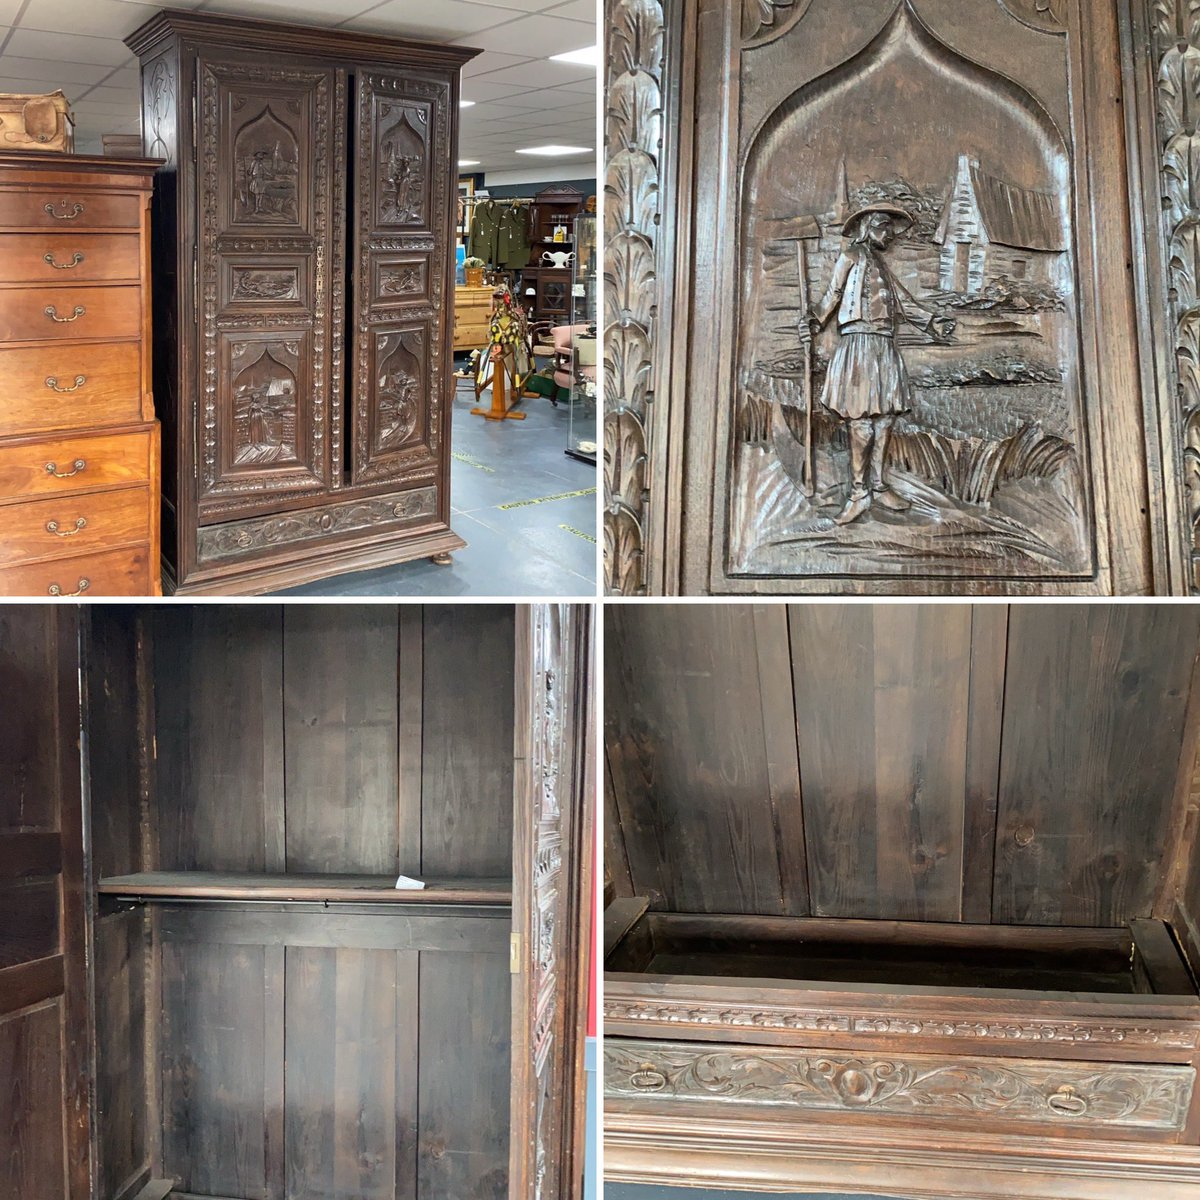 Leaving you tonight with this large carved continental cupboard. #seeyoutomorrow #astraantiquescentre #hemswell #lincolnshire #carved #continental #continentalcarvedfurniture #funiture #carving https://t.co/Pb3fhwDMiY